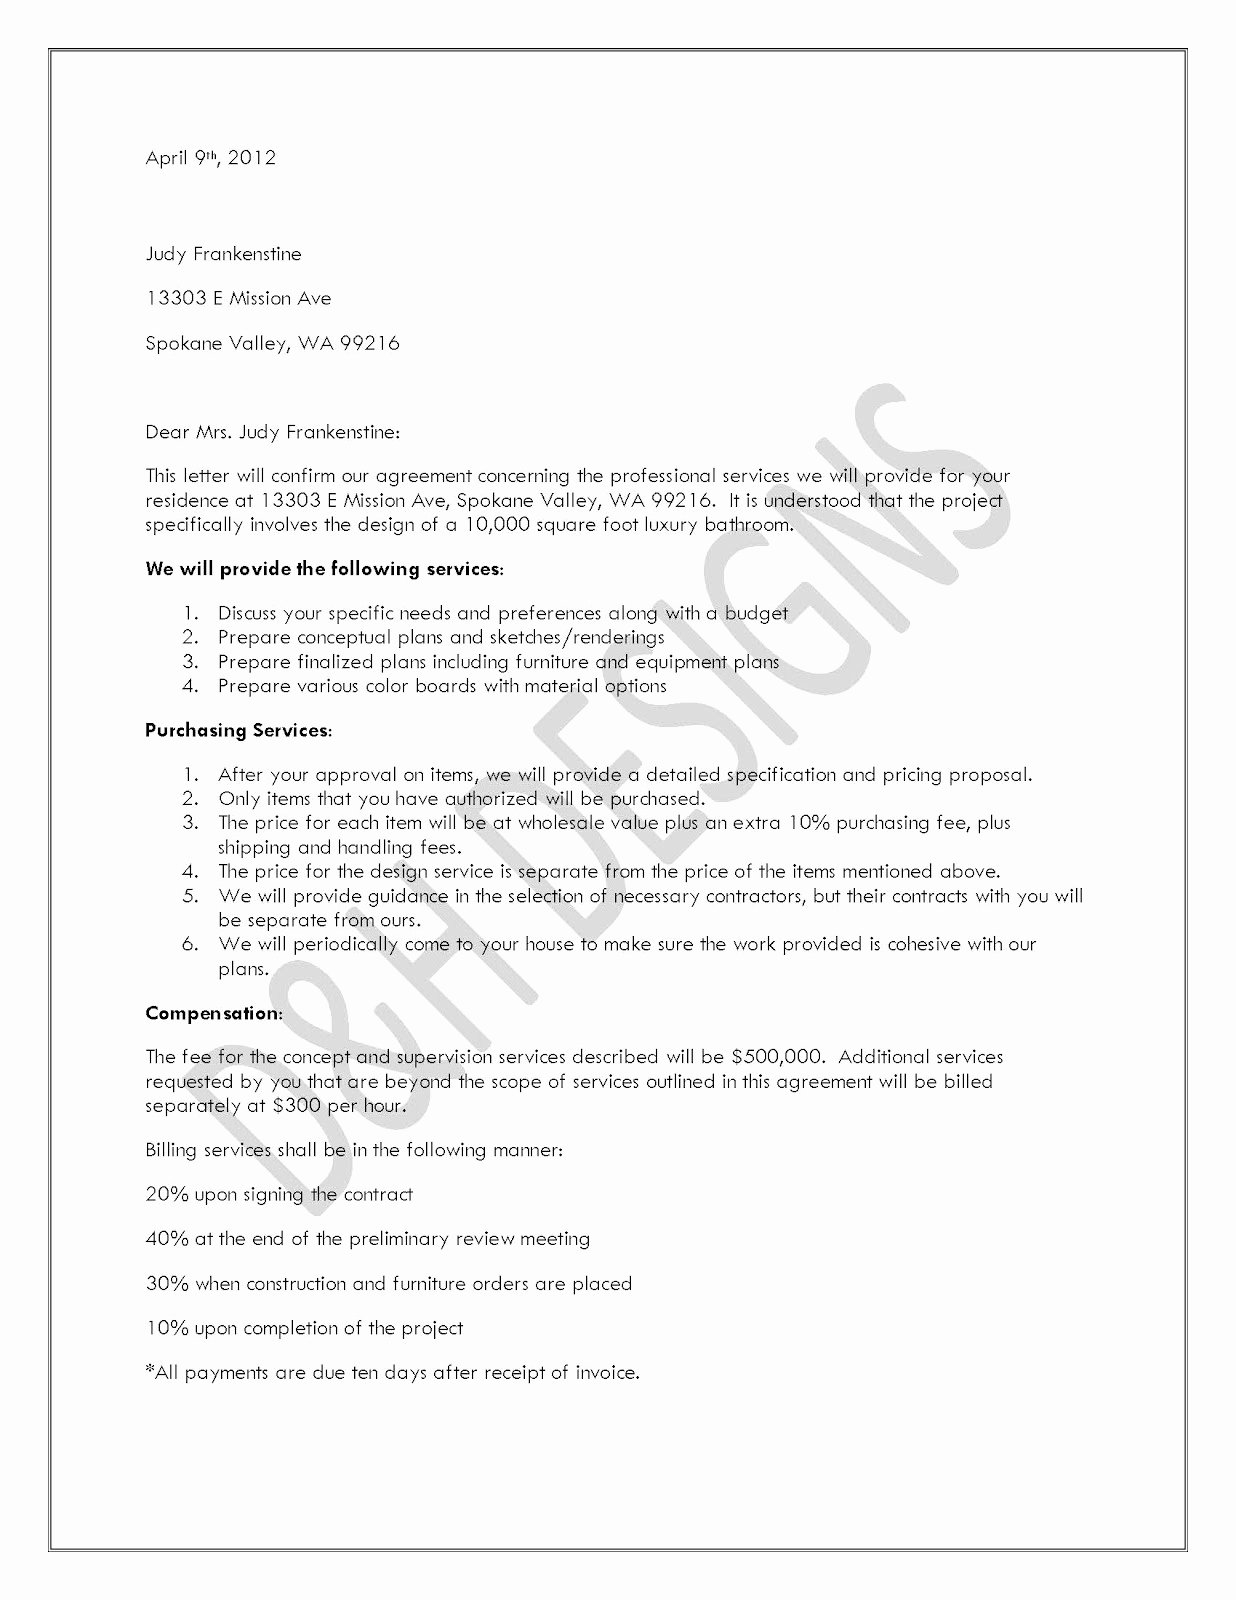 Letter Of Agreement Template Free New Free Printable Letter Of Agreement form Generic